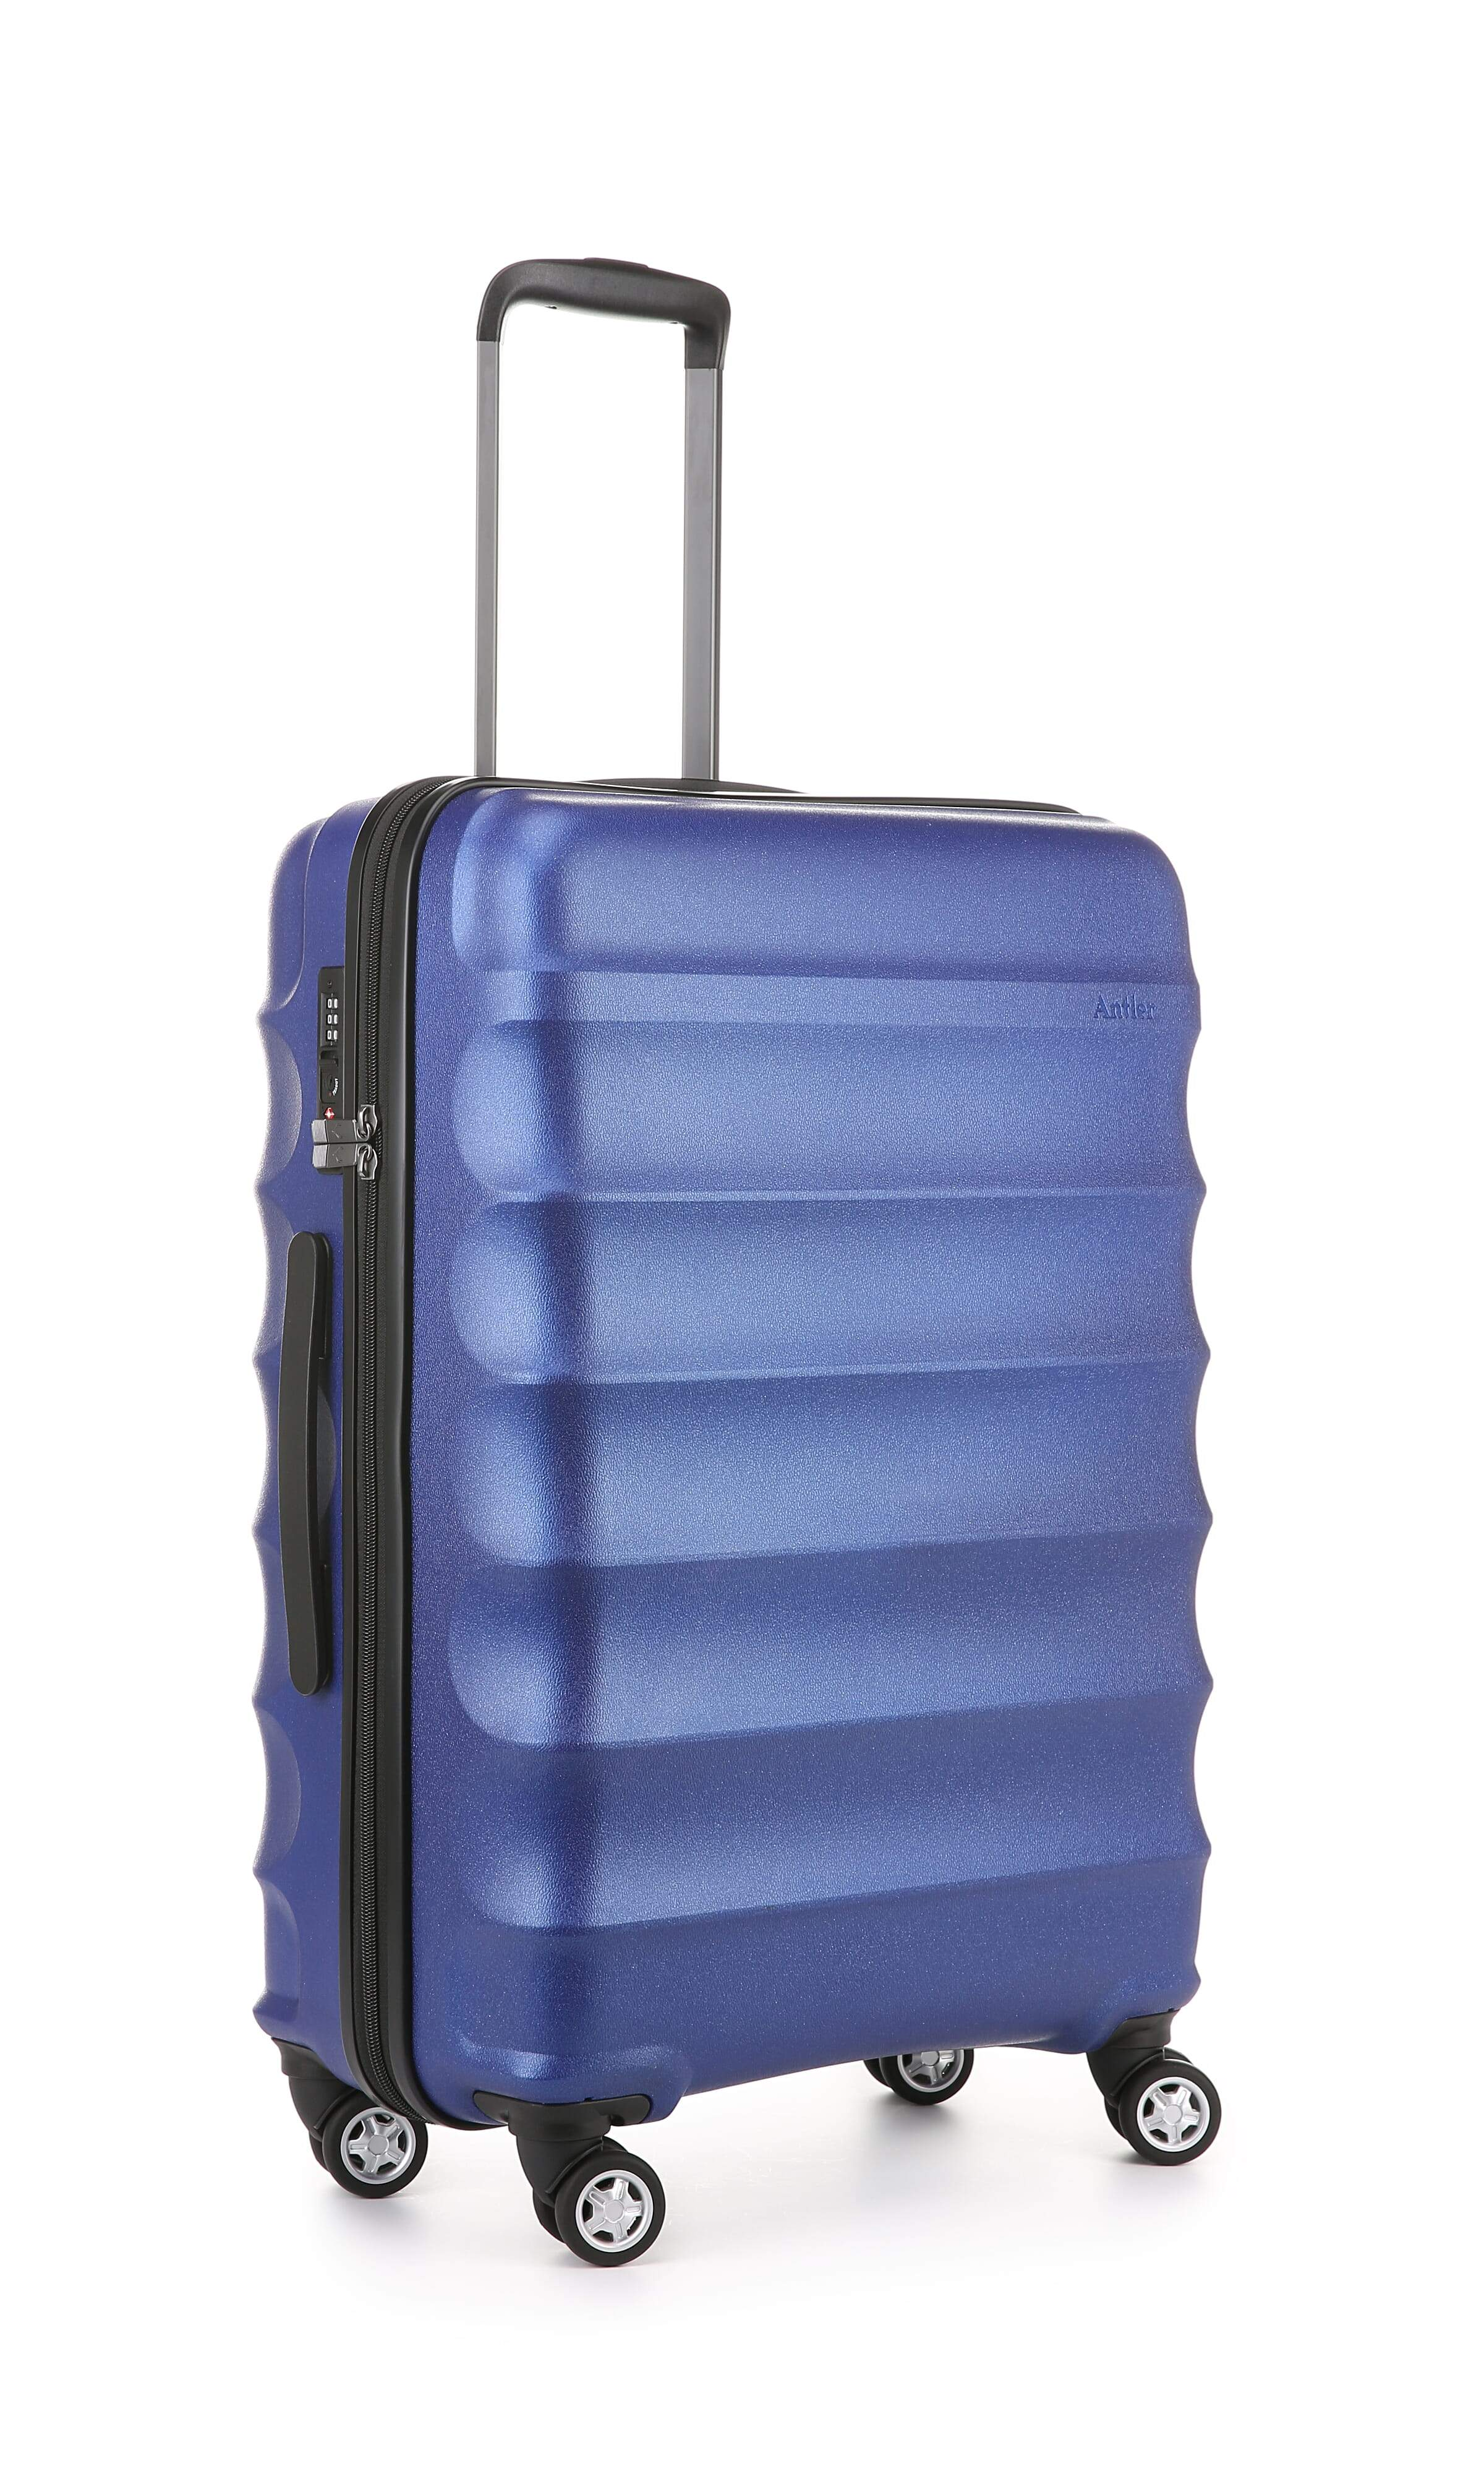 Antler Juno Metallic Suitecase Medium in Cobalt Blue